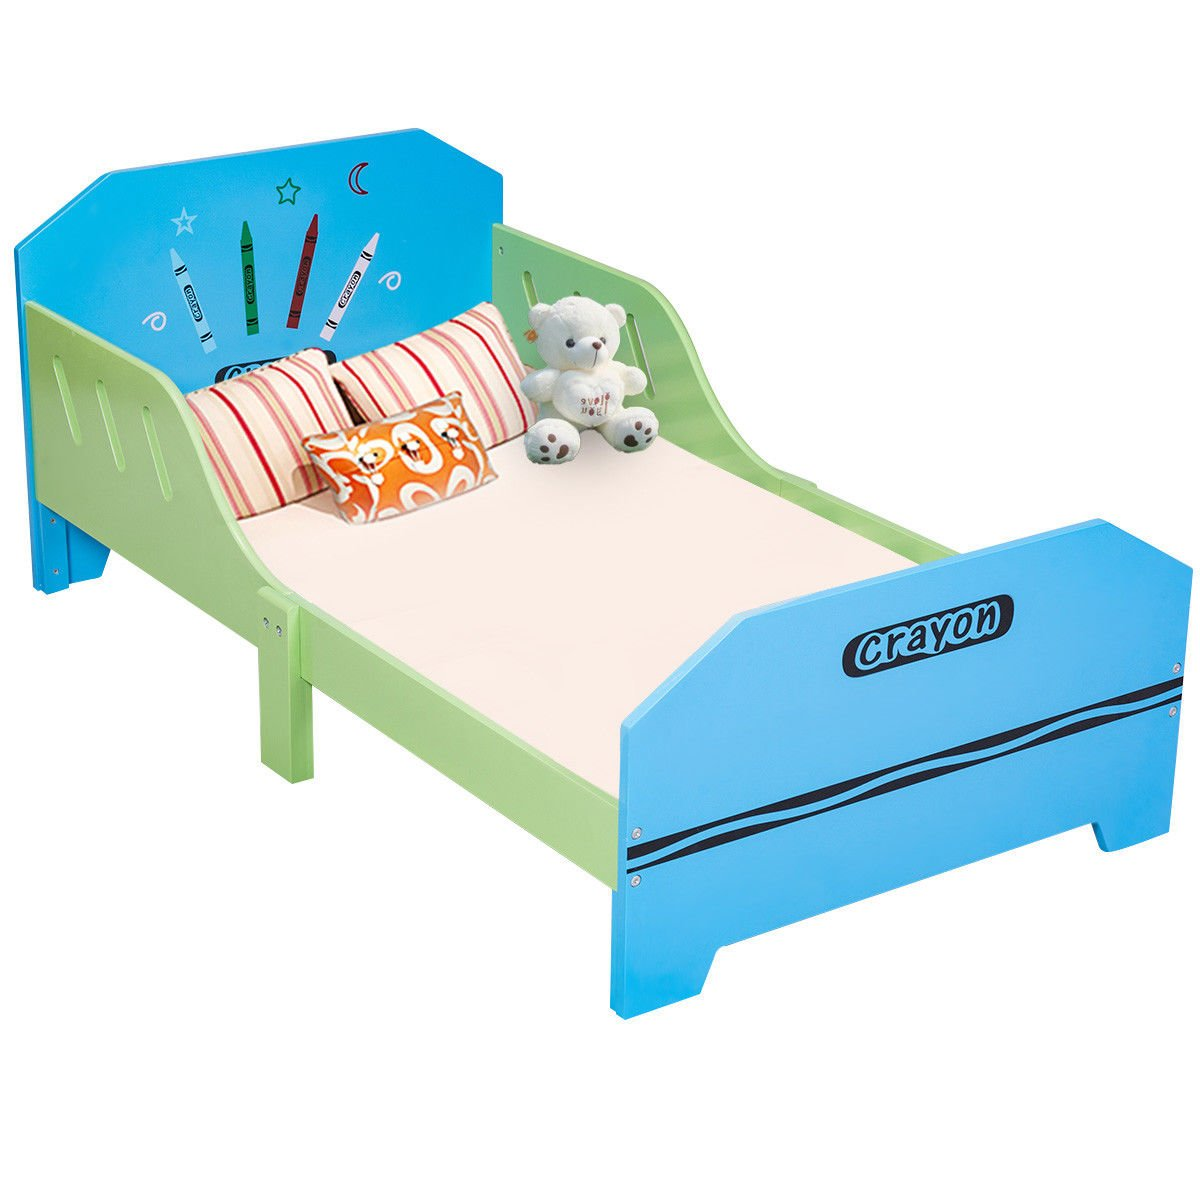 Globe House Products GHP 53.1''x29.1''x21.7'' Blue & Green MDF Crayon Themed Kids Wooden Bed with Bed Rails by Globe House Products